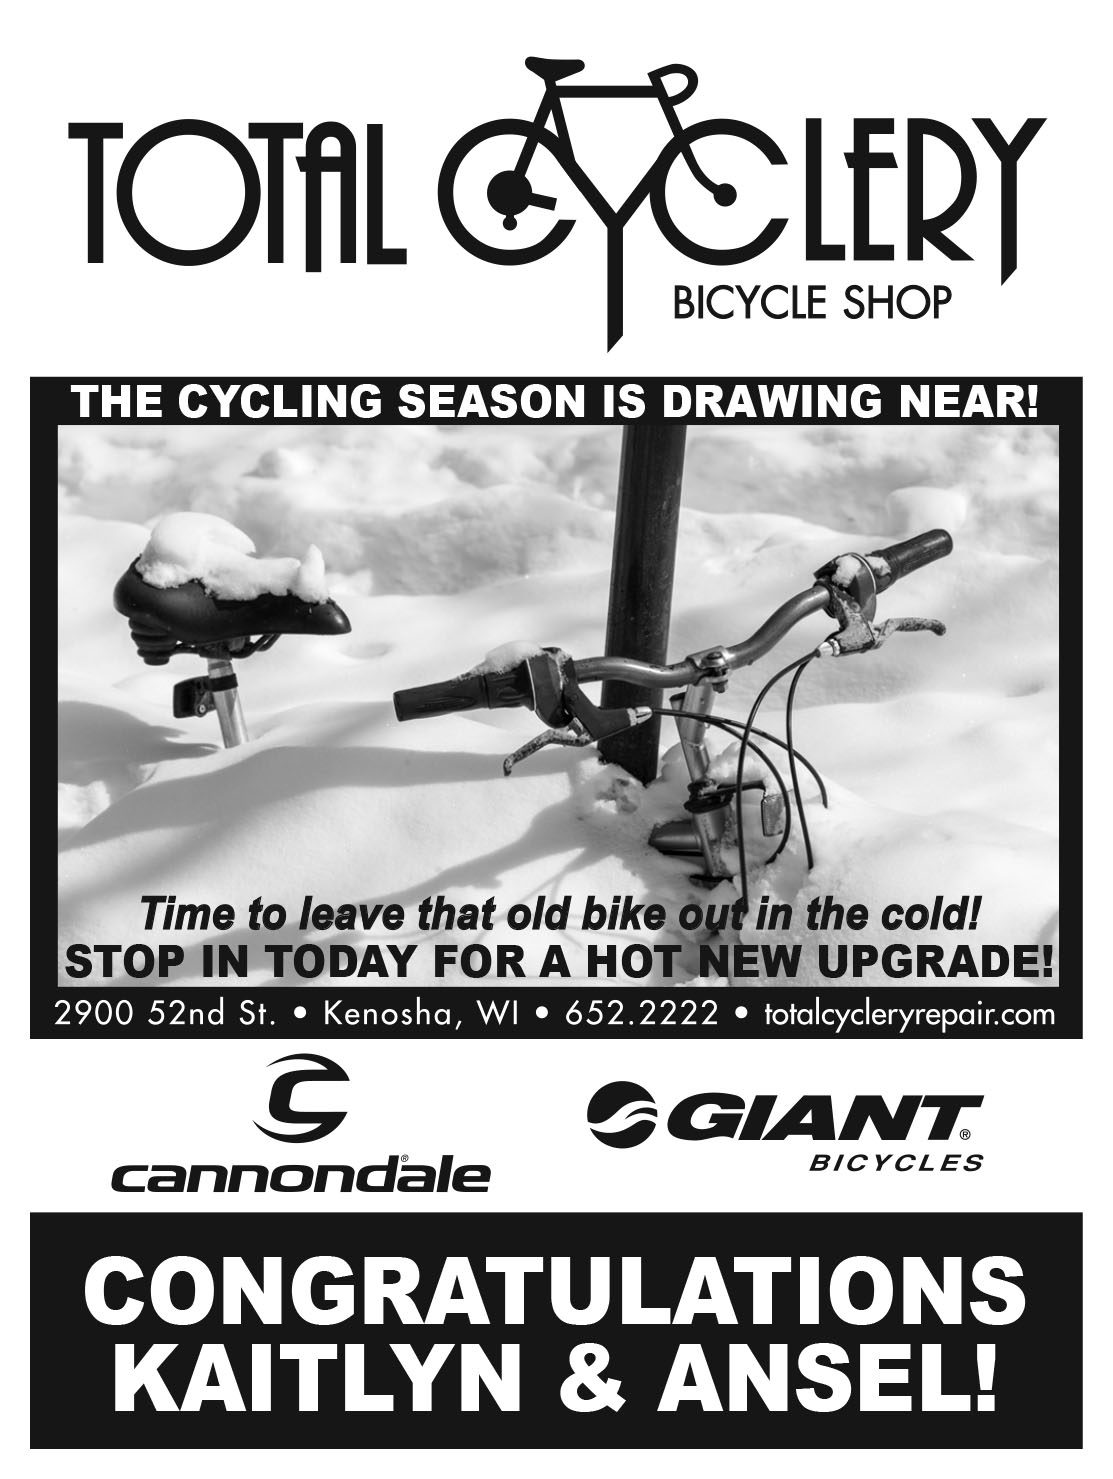 TotalCyclery2018Ad